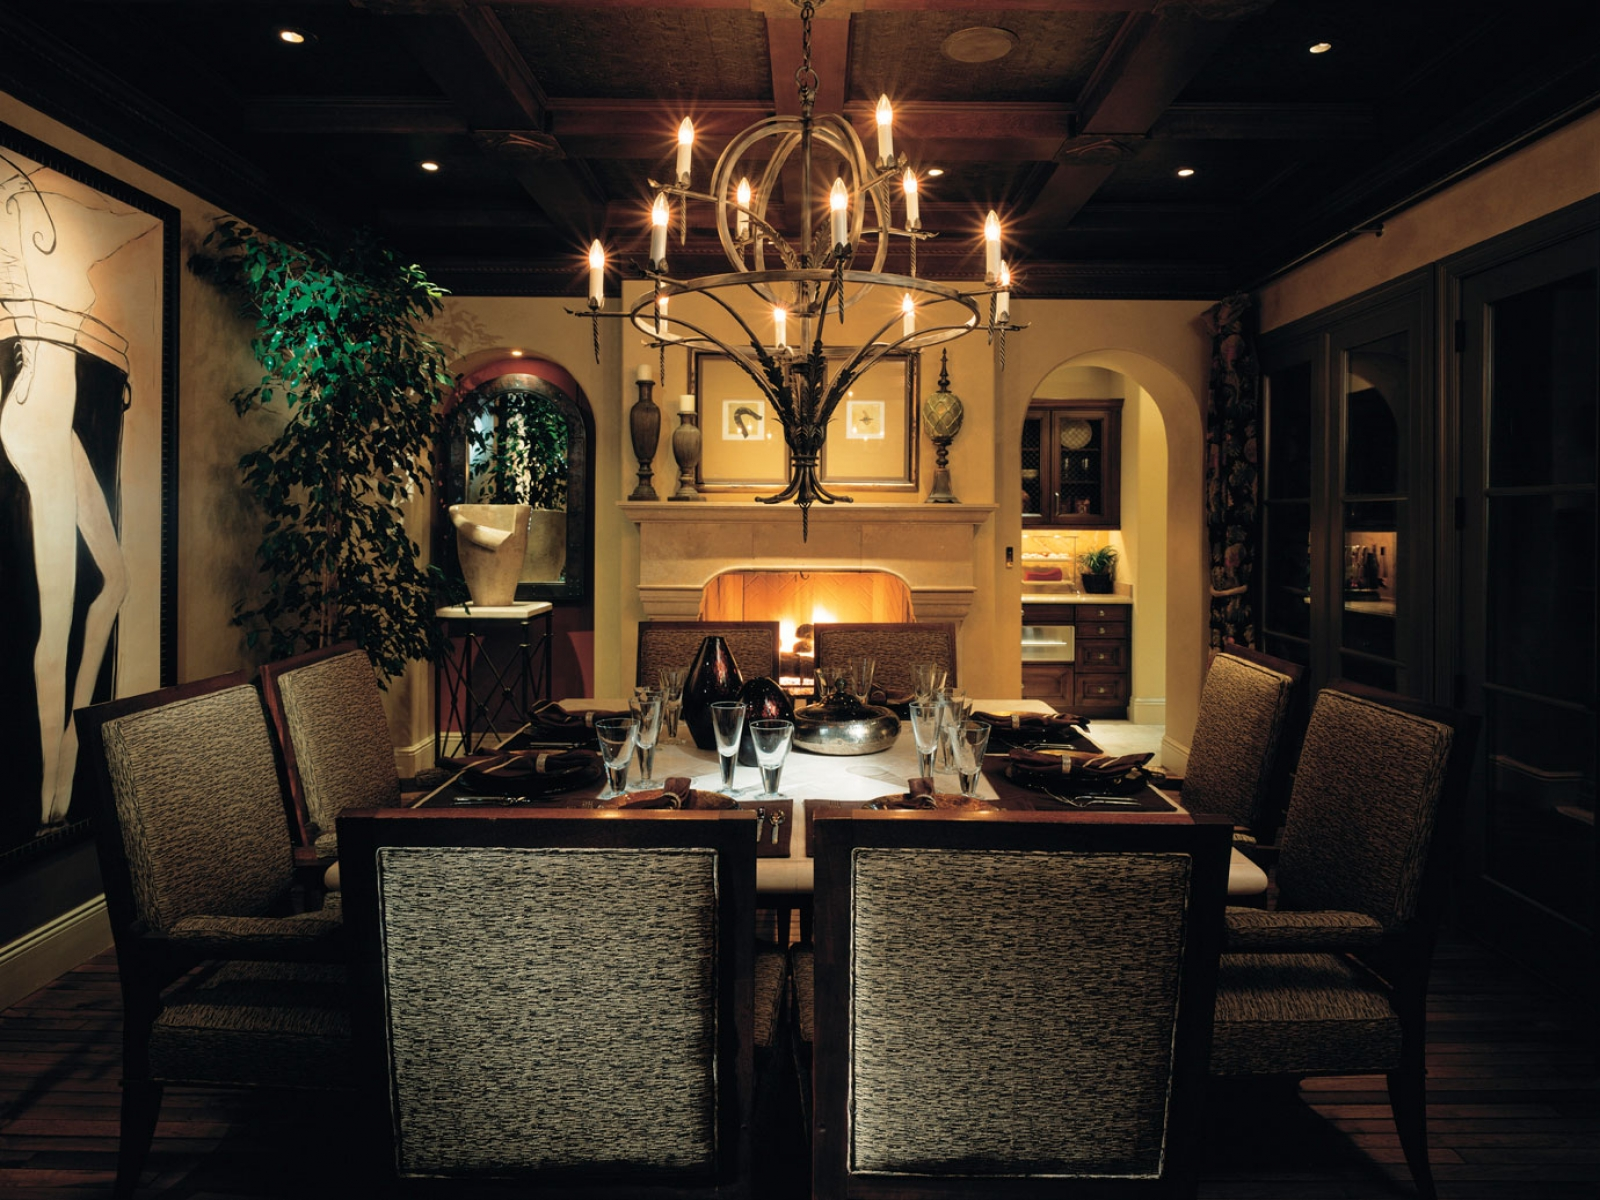 Cool Dining Room Ideas Cool Dining Room Ideas 15 Arrangement Enhancedhomes Org